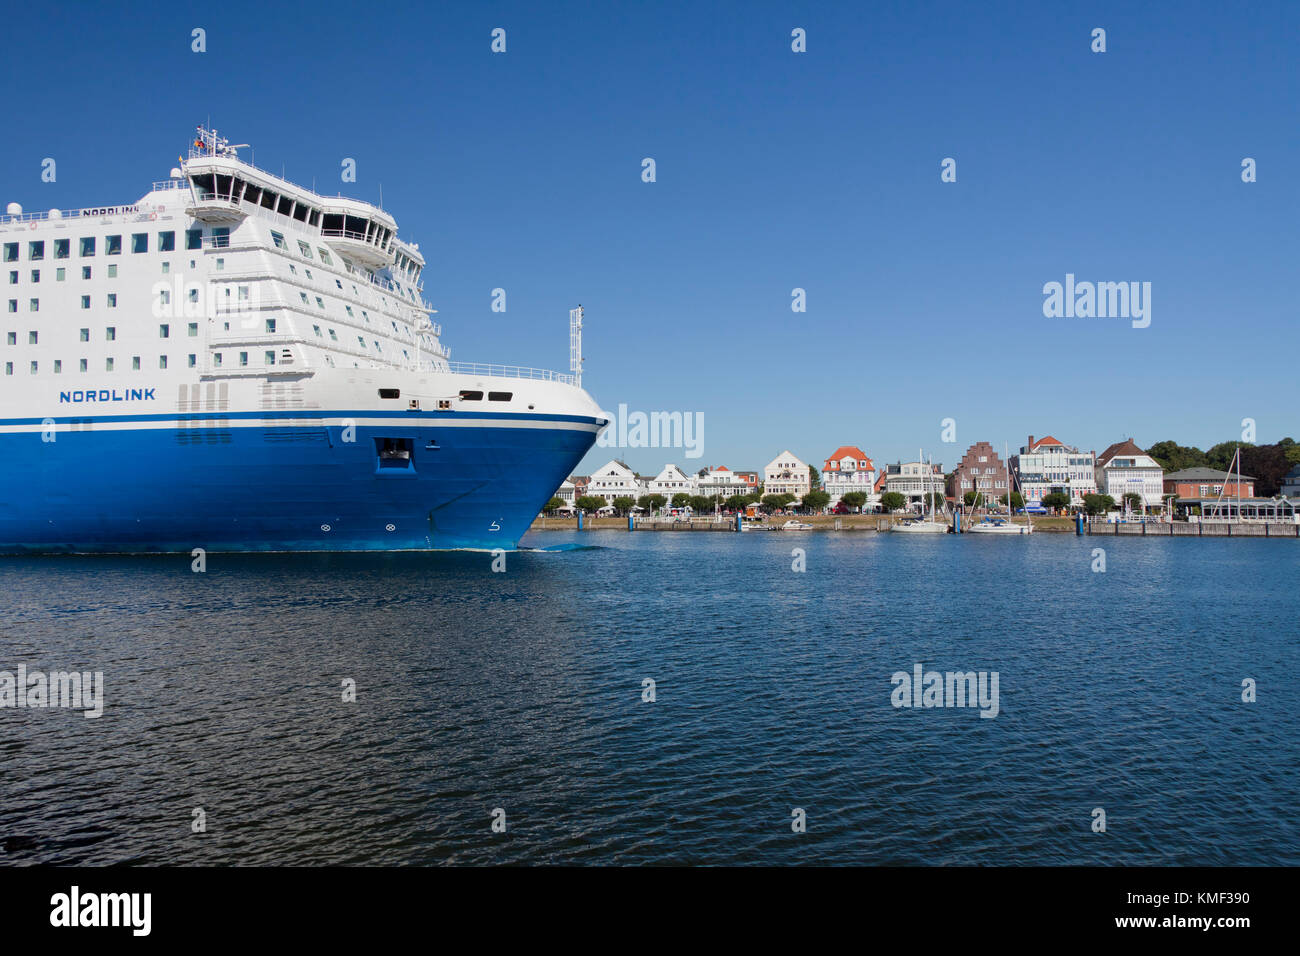 M/S Nordlink, Star class ferry boat sailing for Finnlines between Malmö and Travemünde in the Hanseatic - Stock Image